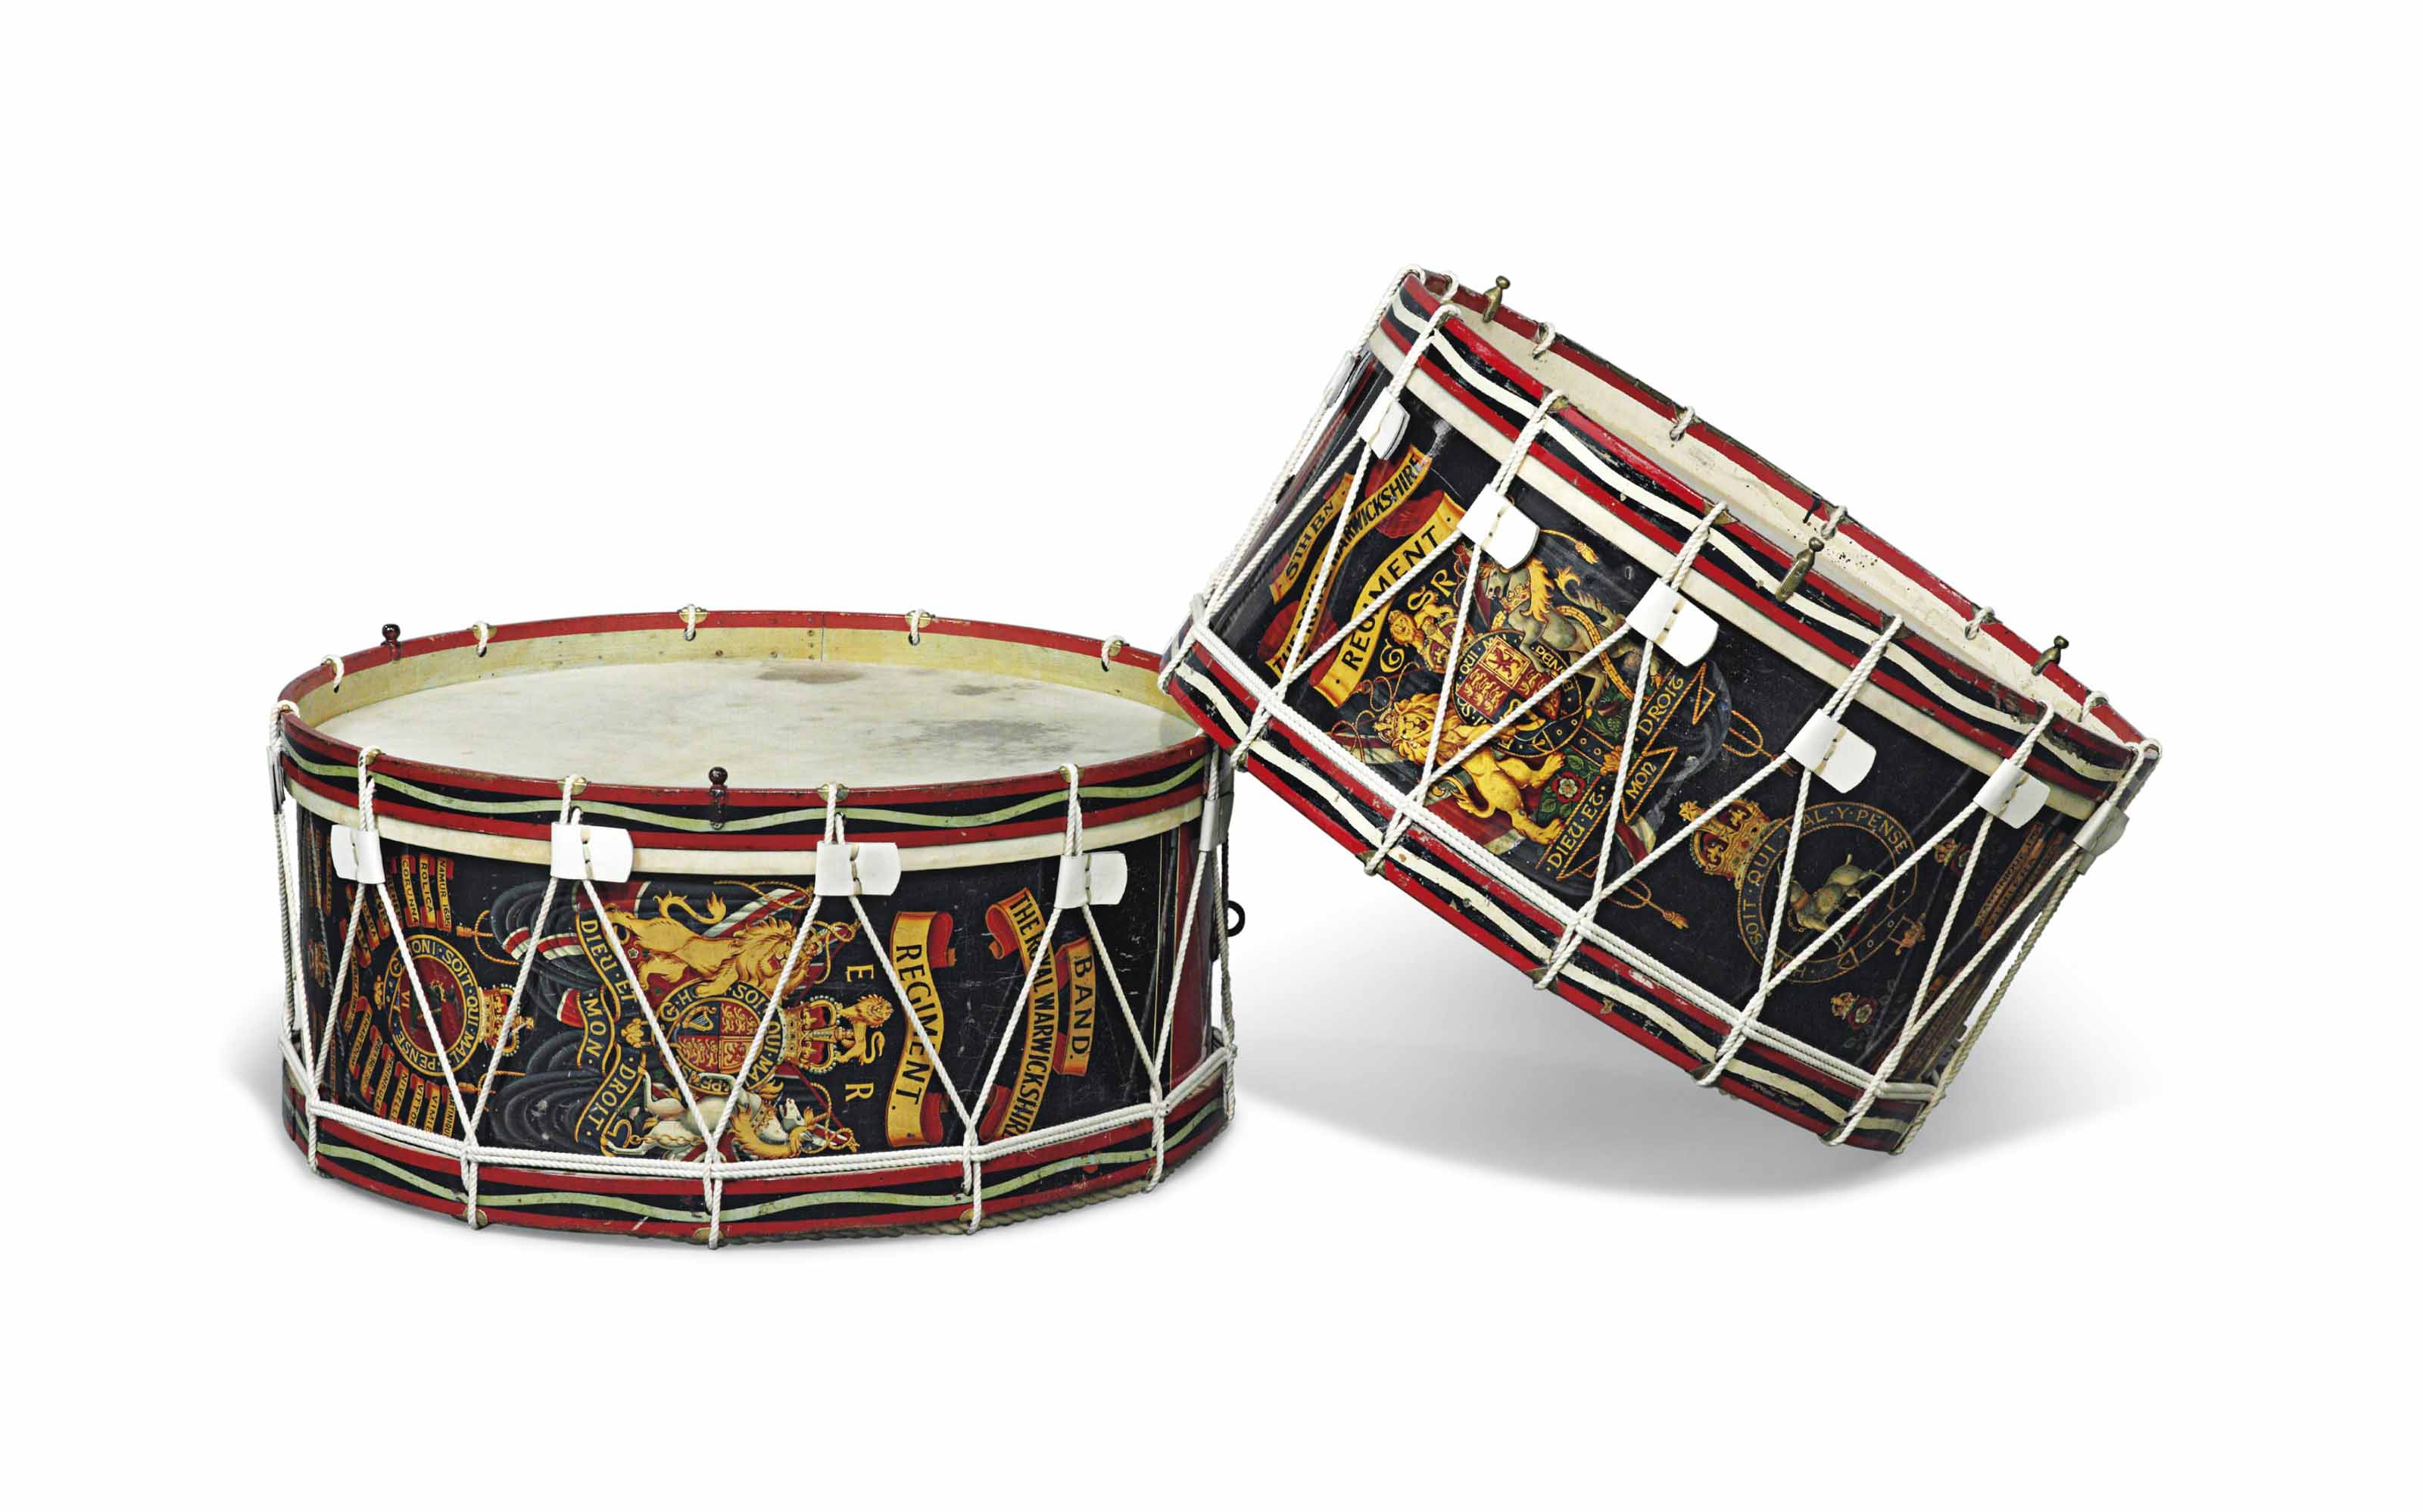 TWO MILITARY BAND DRUMS OF 'TH